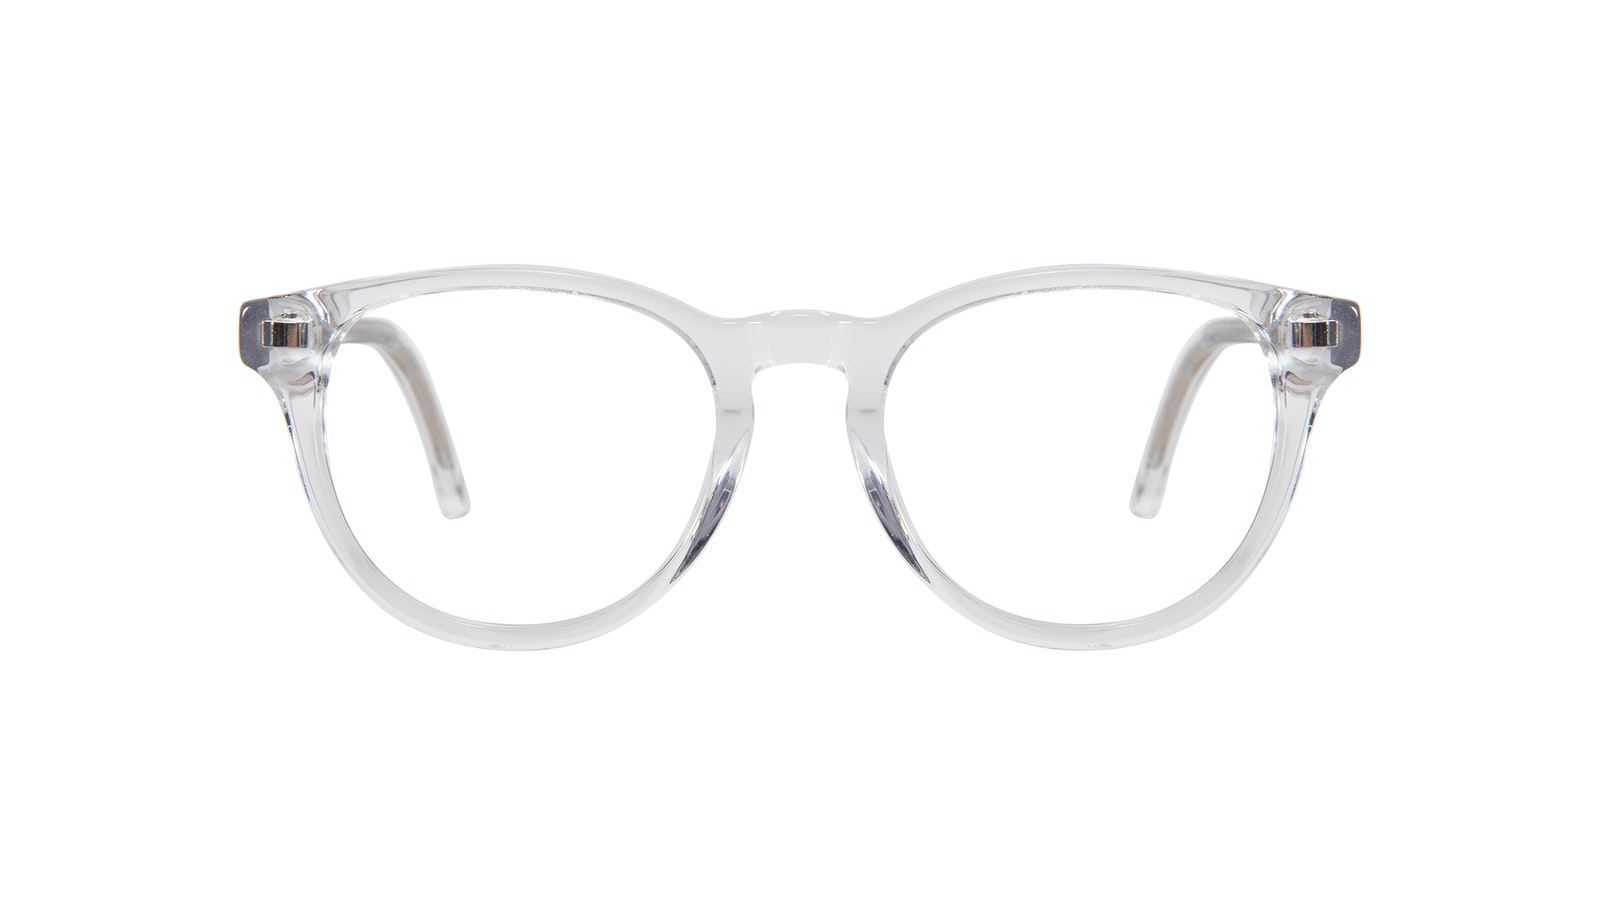 Affordable Fashion Glasses Round Eyeglasses Kids Cult Junior Clear